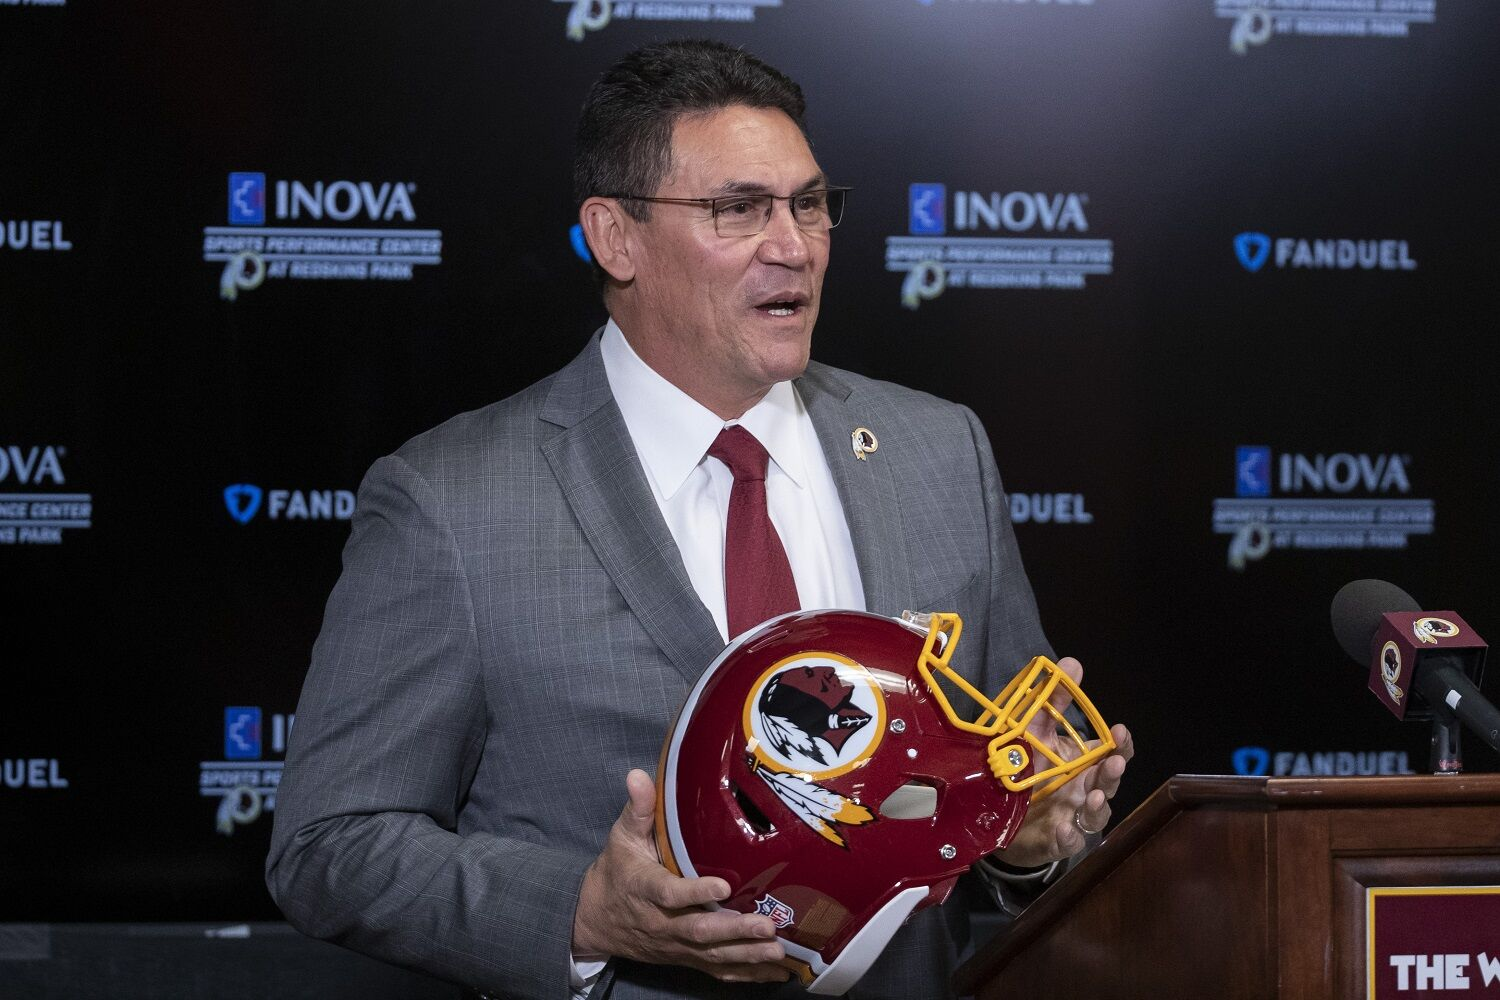 """<p><strong>Can Ron Rivera fix Ashburn?</strong></p> <p>There's <a href=""""https://wtop.com/washington-redskins/2020/01/ill-bet-on-me-new-head-coach-ron-rivera-takes-over-in-washington/"""" target=""""_blank"""" rel=""""noopener"""">a new head coach</a> (and <a href=""""https://wtop.com/washington-redskins/2020/01/redskins-hire-jack-del-rio-as-defensive-coordinator/"""" target=""""_blank"""" rel=""""noopener"""">defensive coo</a>r<a href=""""https://wtop.com/washington-redskins/2020/01/redskins-hire-jack-del-rio-as-defensive-coordinator/"""" target=""""_blank"""" rel=""""noopener"""">dinator</a>) in town, but the Burgundy and Gold enter 2020 still without either a GM or team president, following Bruce Allen's ouster. How will they address that void? If the head coach has any say in the hiring process, how will that dynamic play out? Will Daniel Snyder still meddle with top picks, specifically the No. 2 selection the 'Skins now own heading into April's draft? Can Ohio State's Chase Young help kick start the turnaround from the defensive side of the ball? Can Rivera turn Dwayne Haskins into a top flight NFL starter? Has Ashburn fully shifted feeding from Tuscaloosa to Columbus? Rivera and Del Rio are the first two answers, but many more questions remain.</p>"""